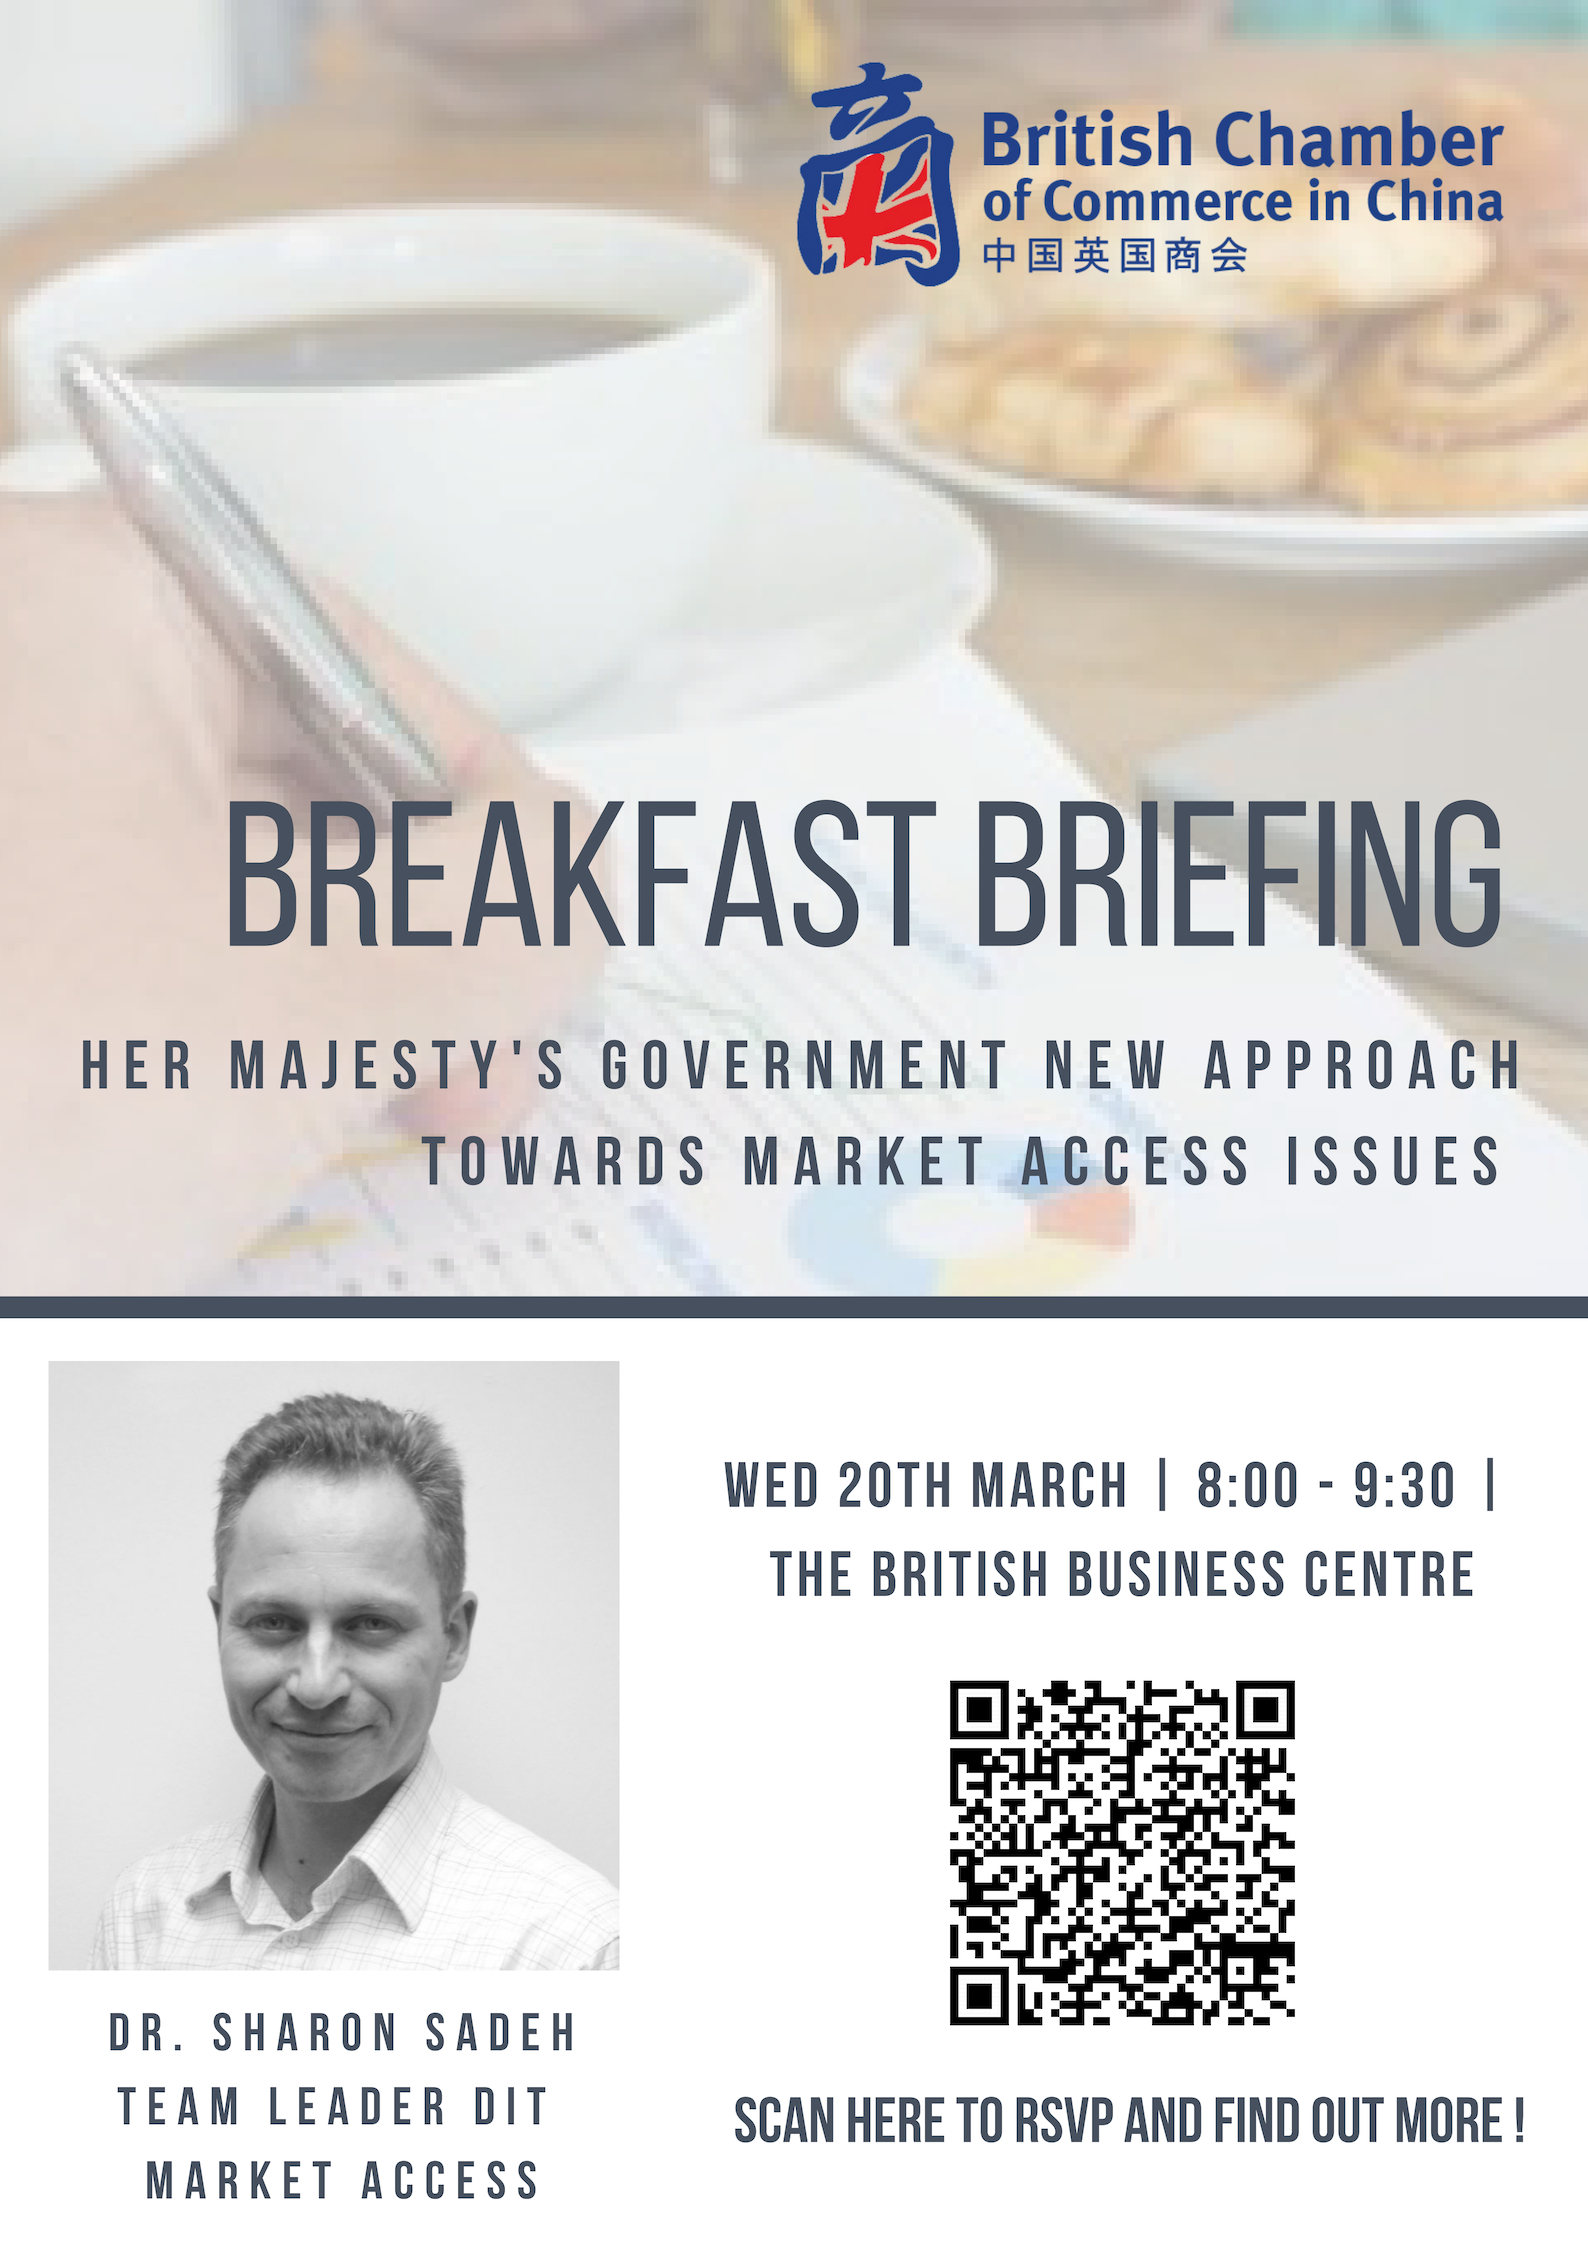 Breakfast Briefing: Her Majesty's Government New Approach Towards Market Access Issues